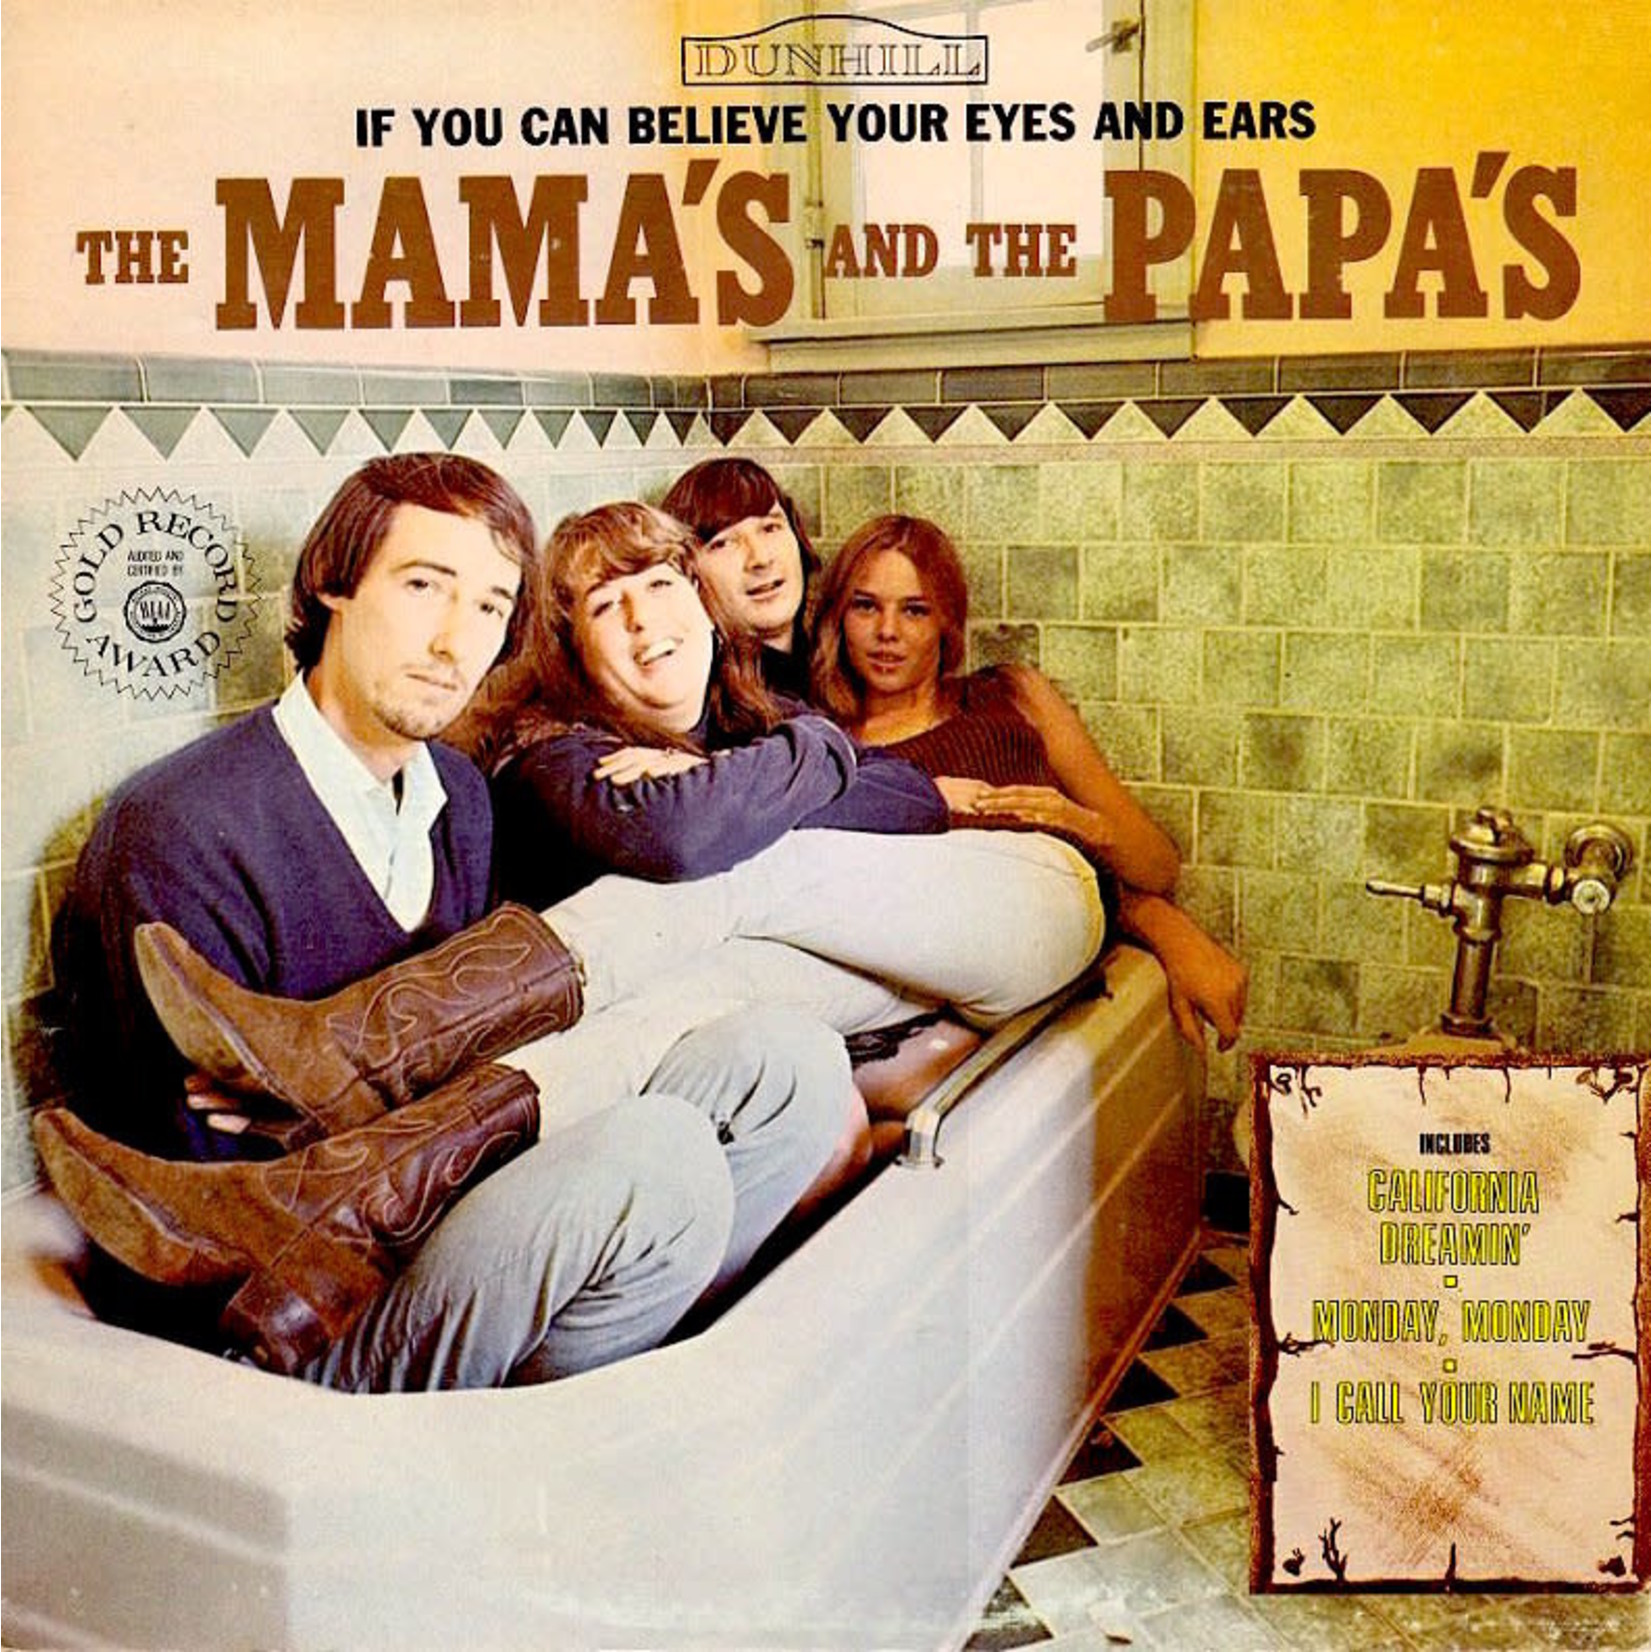 [Vintage] Mamas & Papas: If You Can Believe Your Eyes and Ears